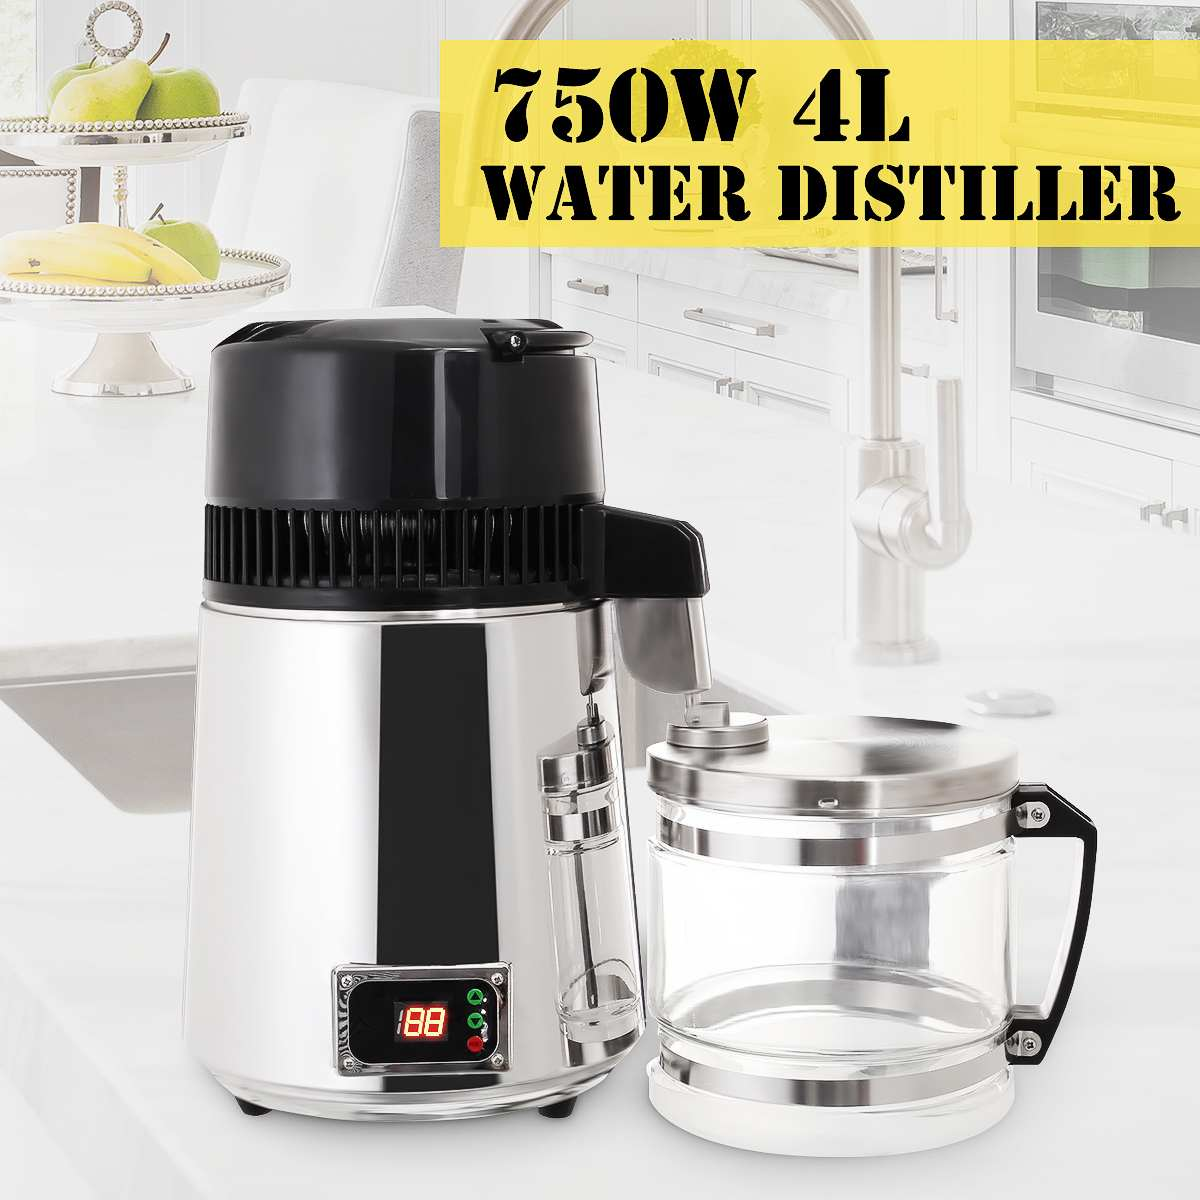 4L 750W Water Distiller Household Distilled Pure Water Machine Distillation Purifier Filter Stainless Steel Water Filter AU Plug image